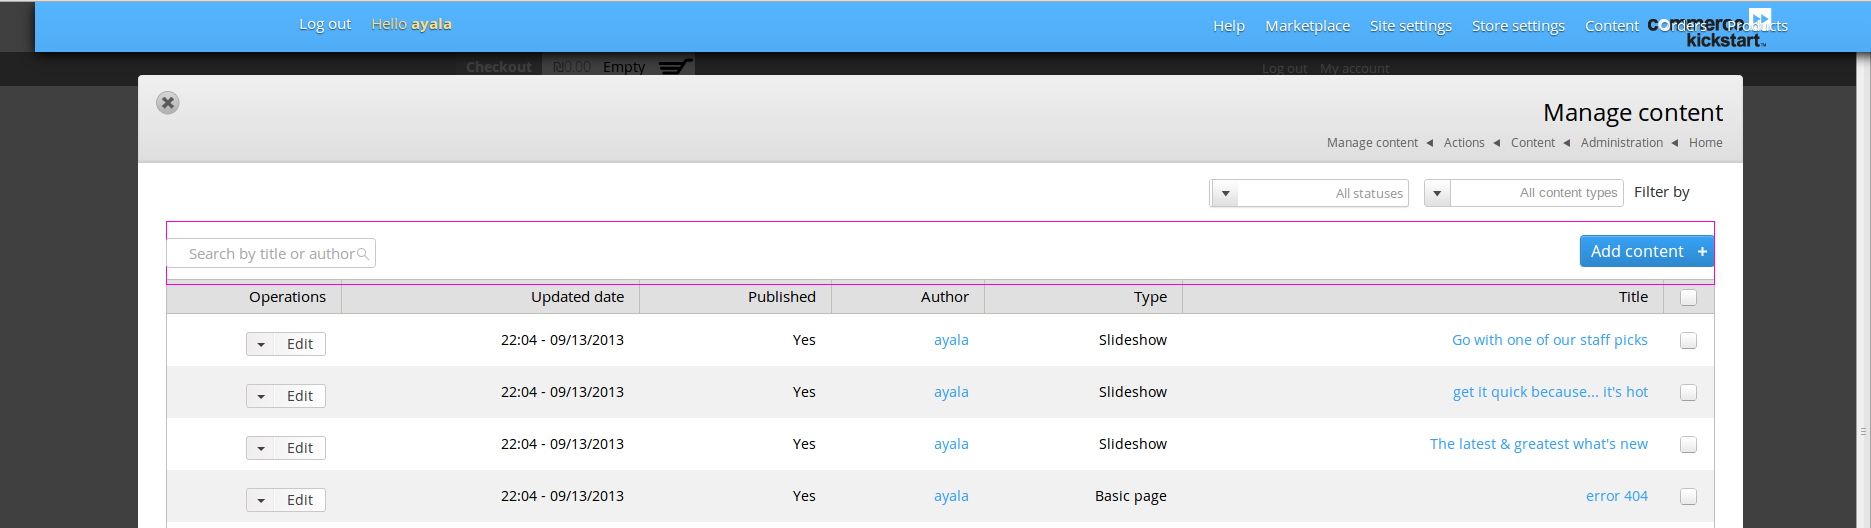 Html elements overlap in Manage content\products\orders